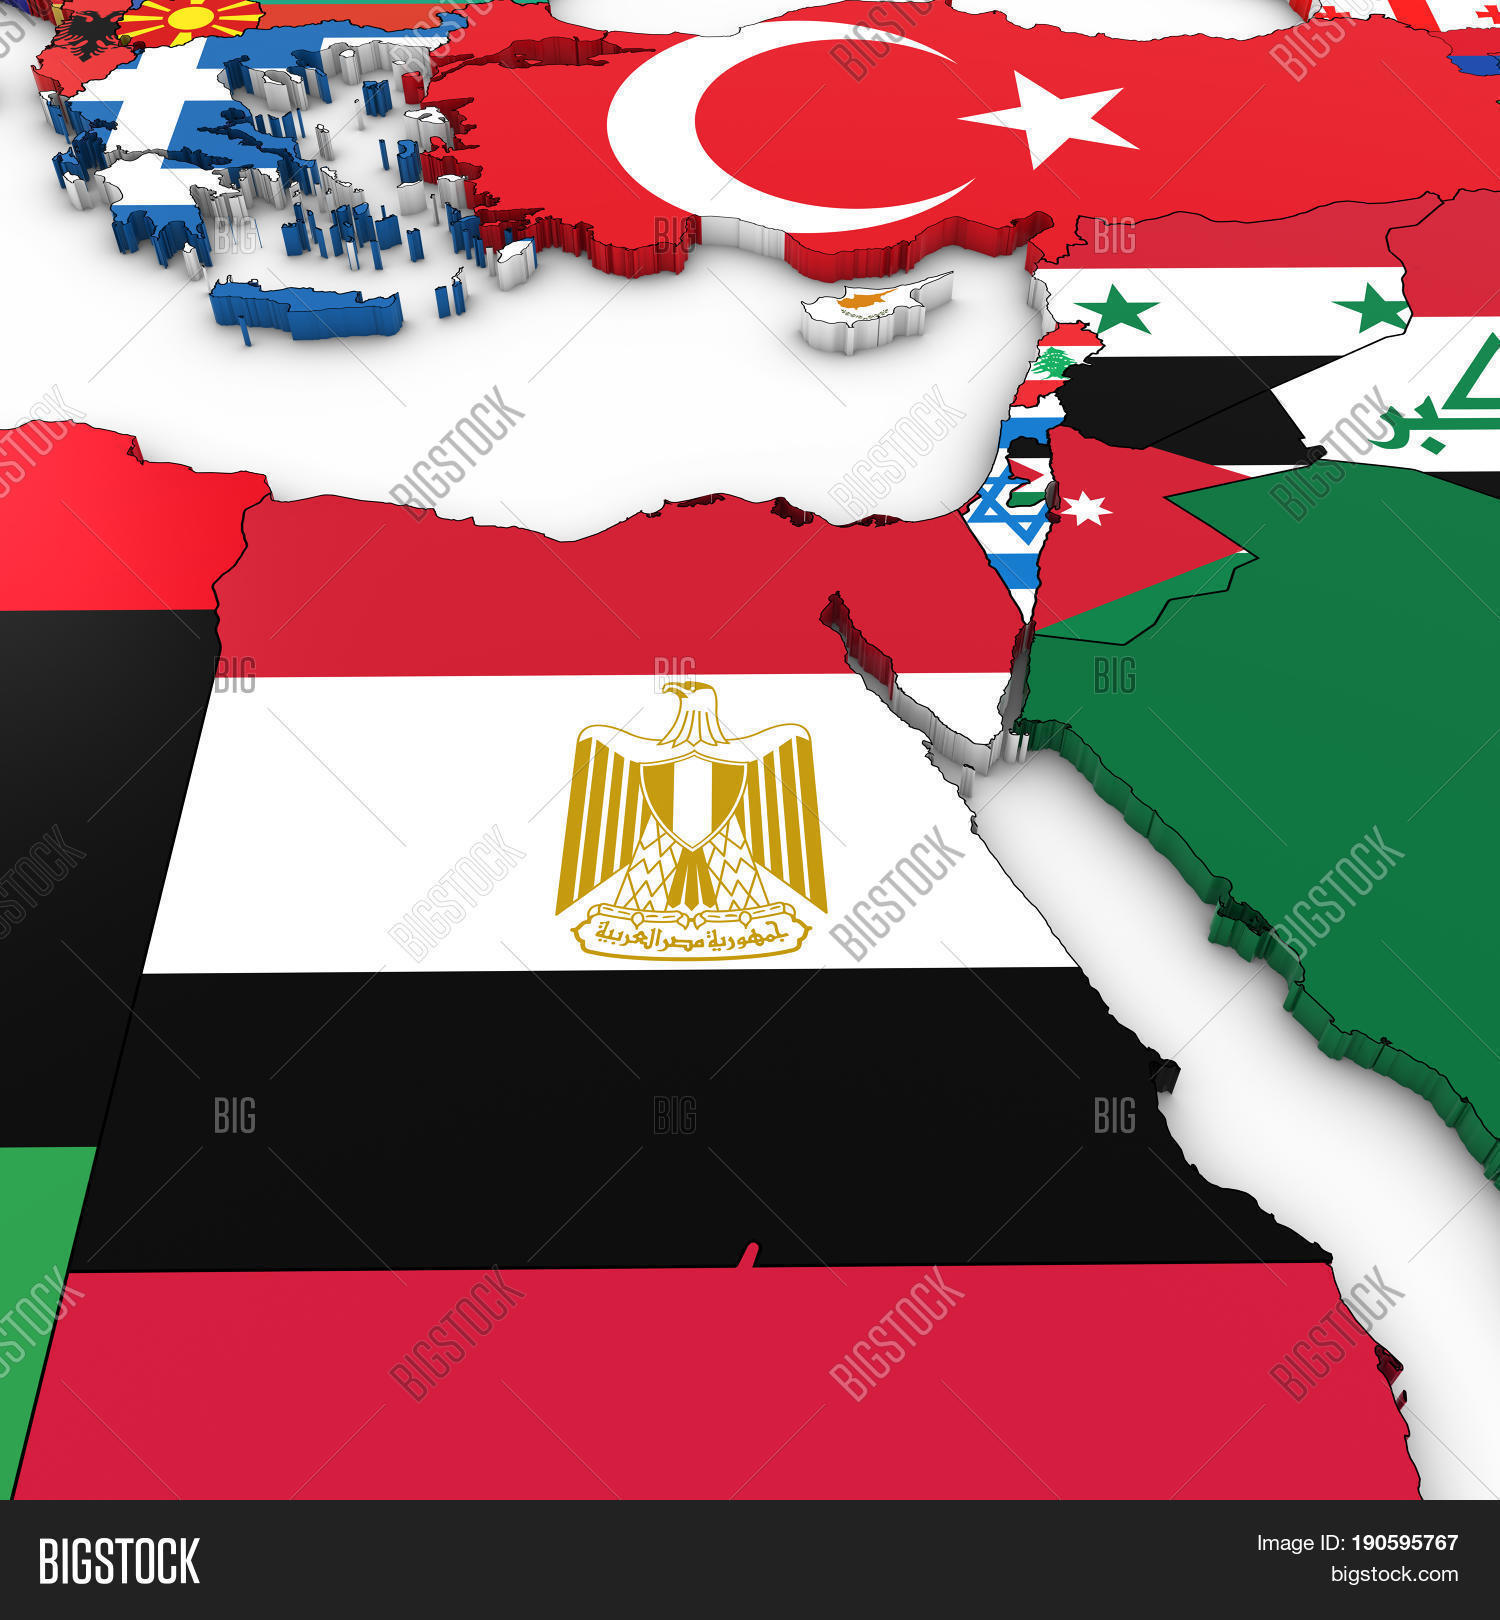 3D Map North Africa Middle East Image Photo Bigstock